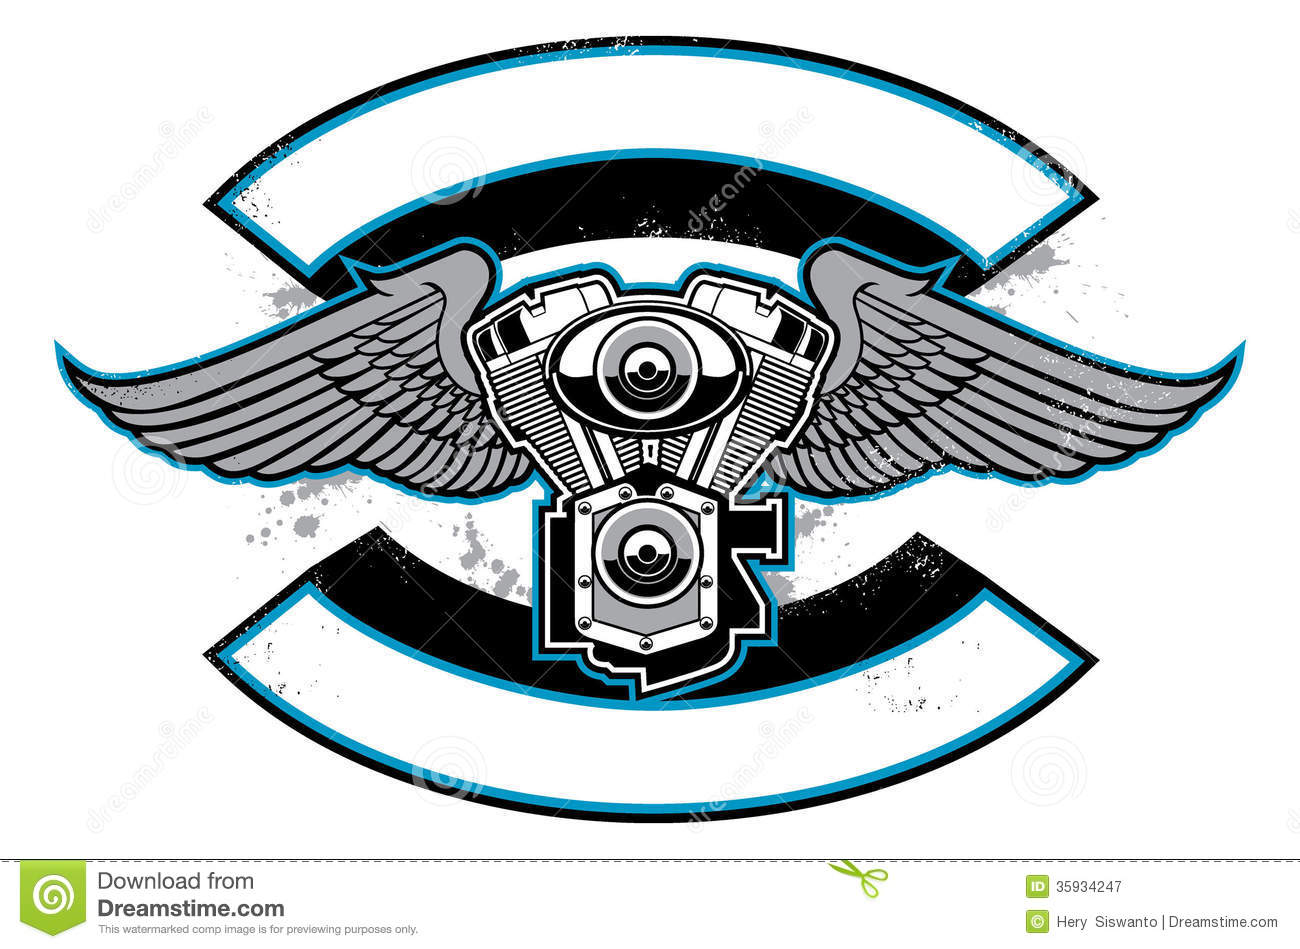 Motorcycle gang clipart.